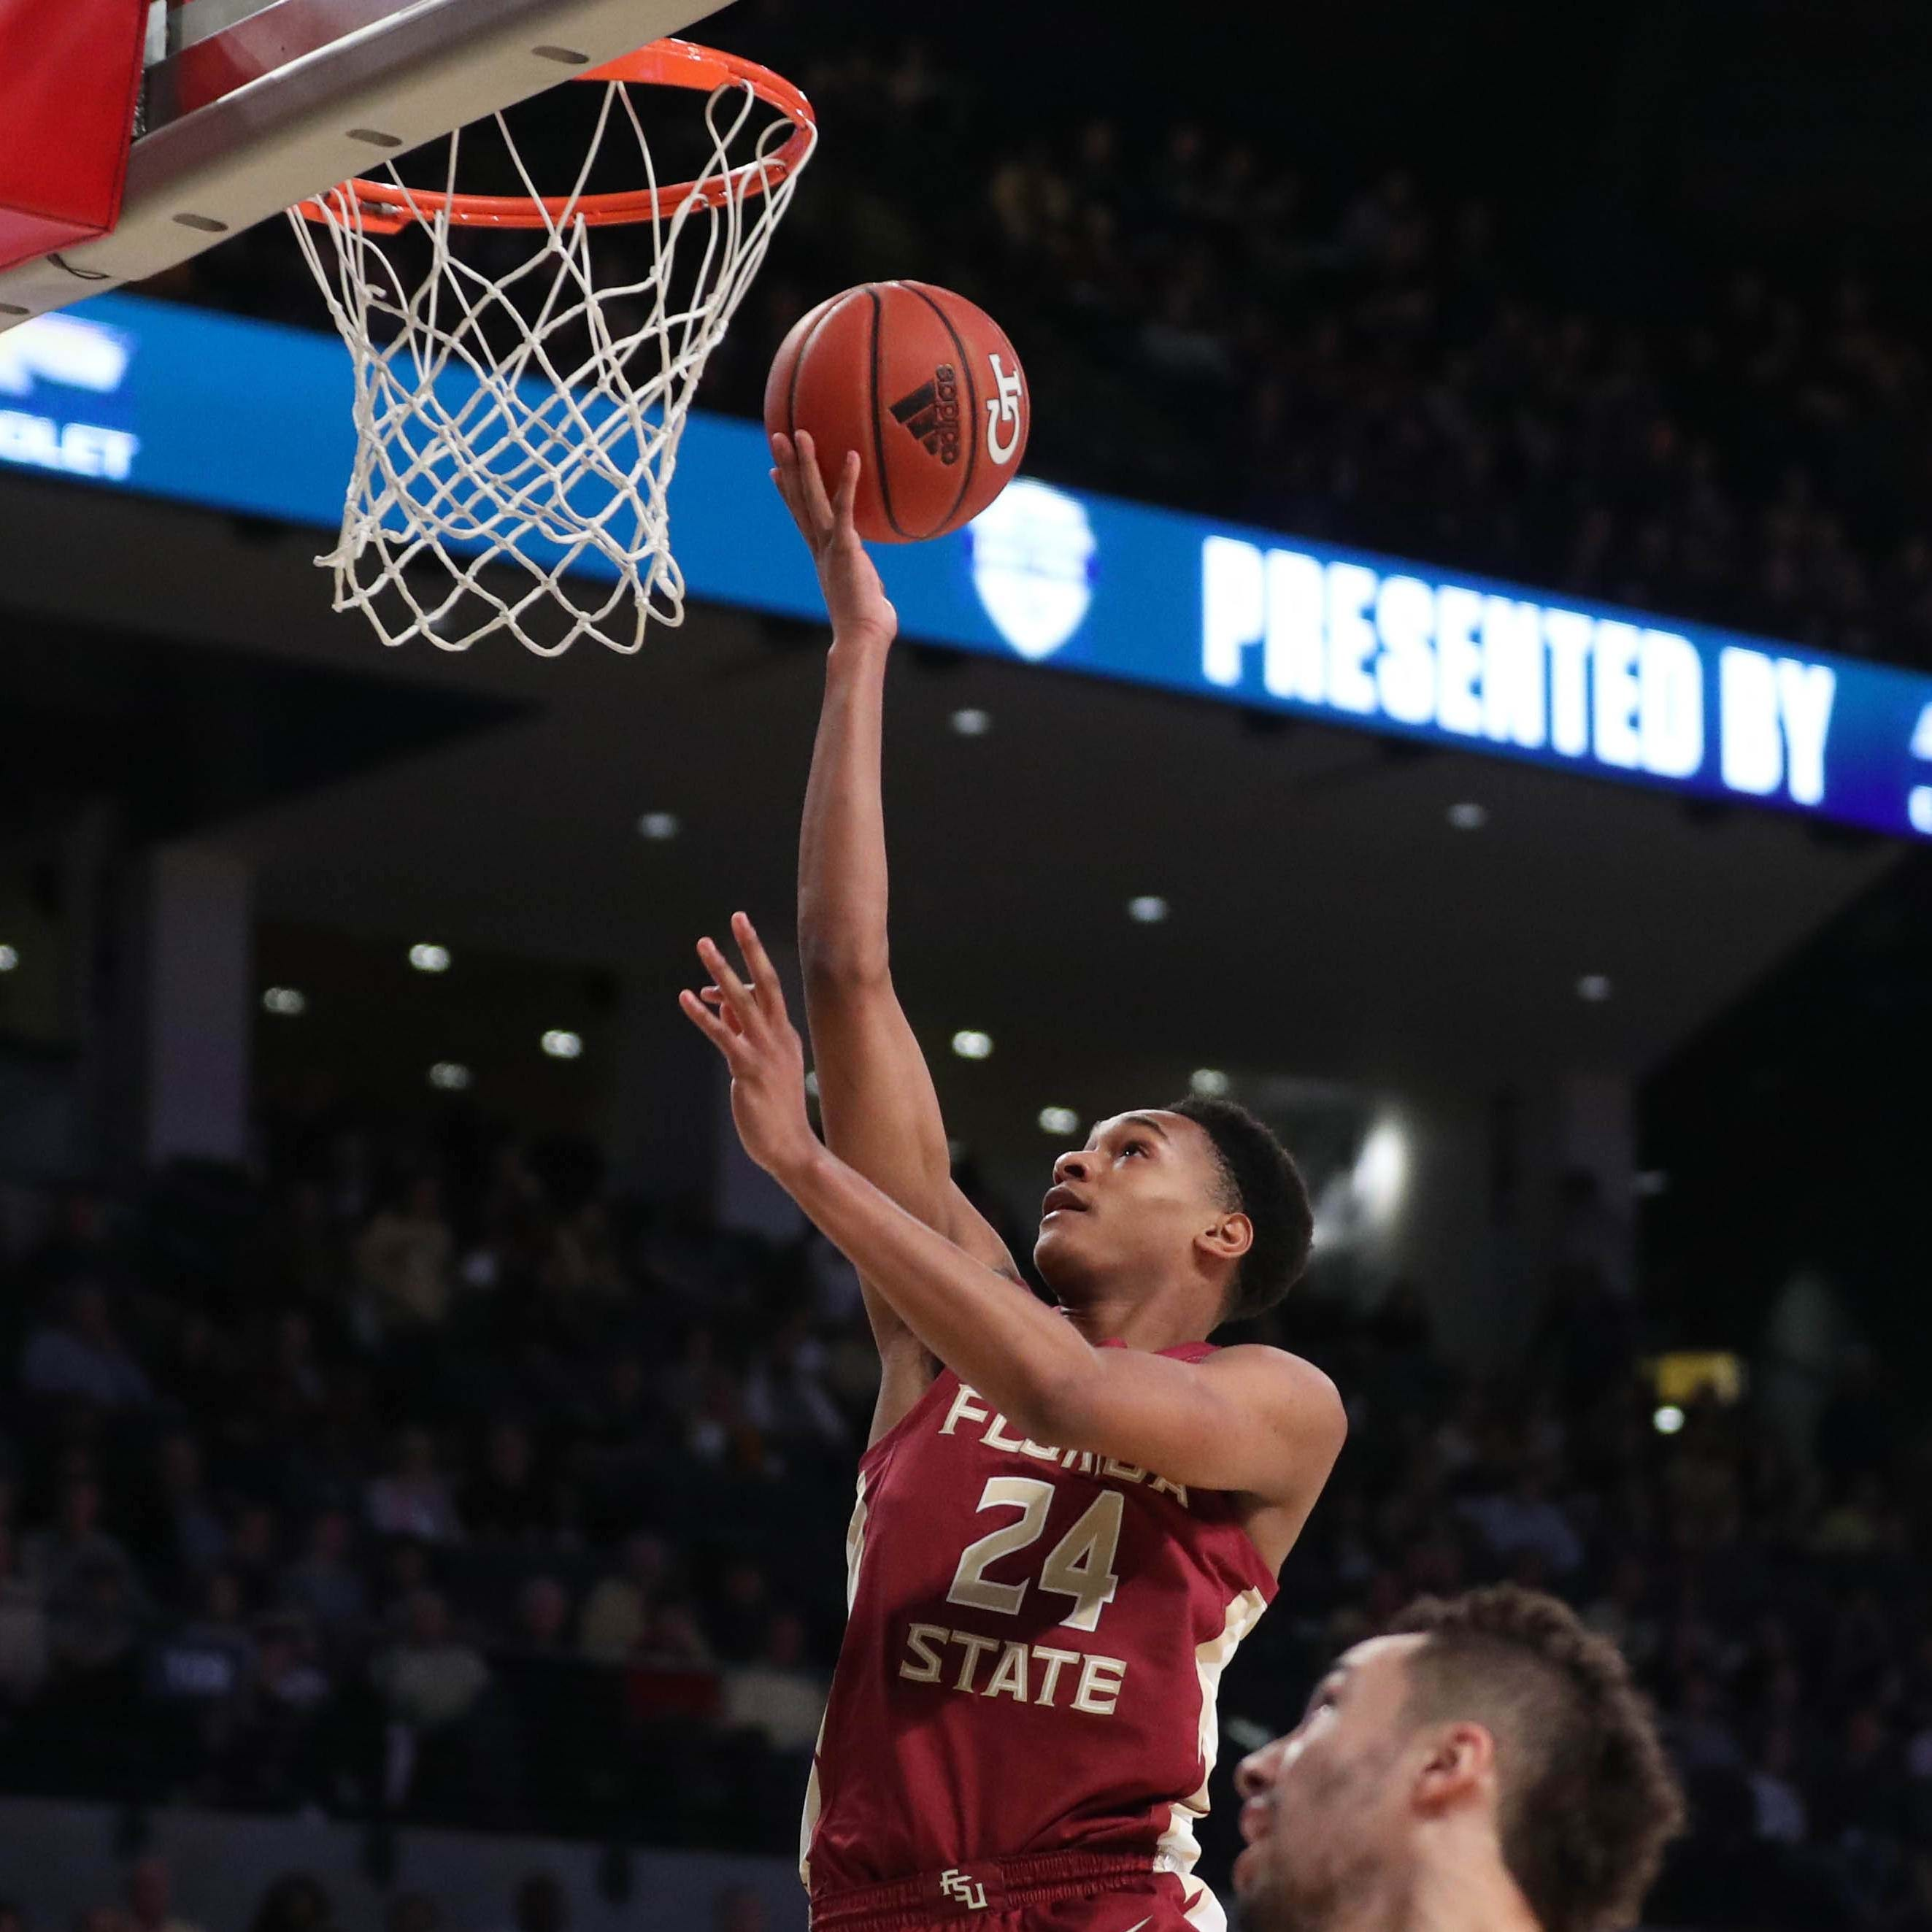 Florida State continues winning streak with blowout of Georgia Tech